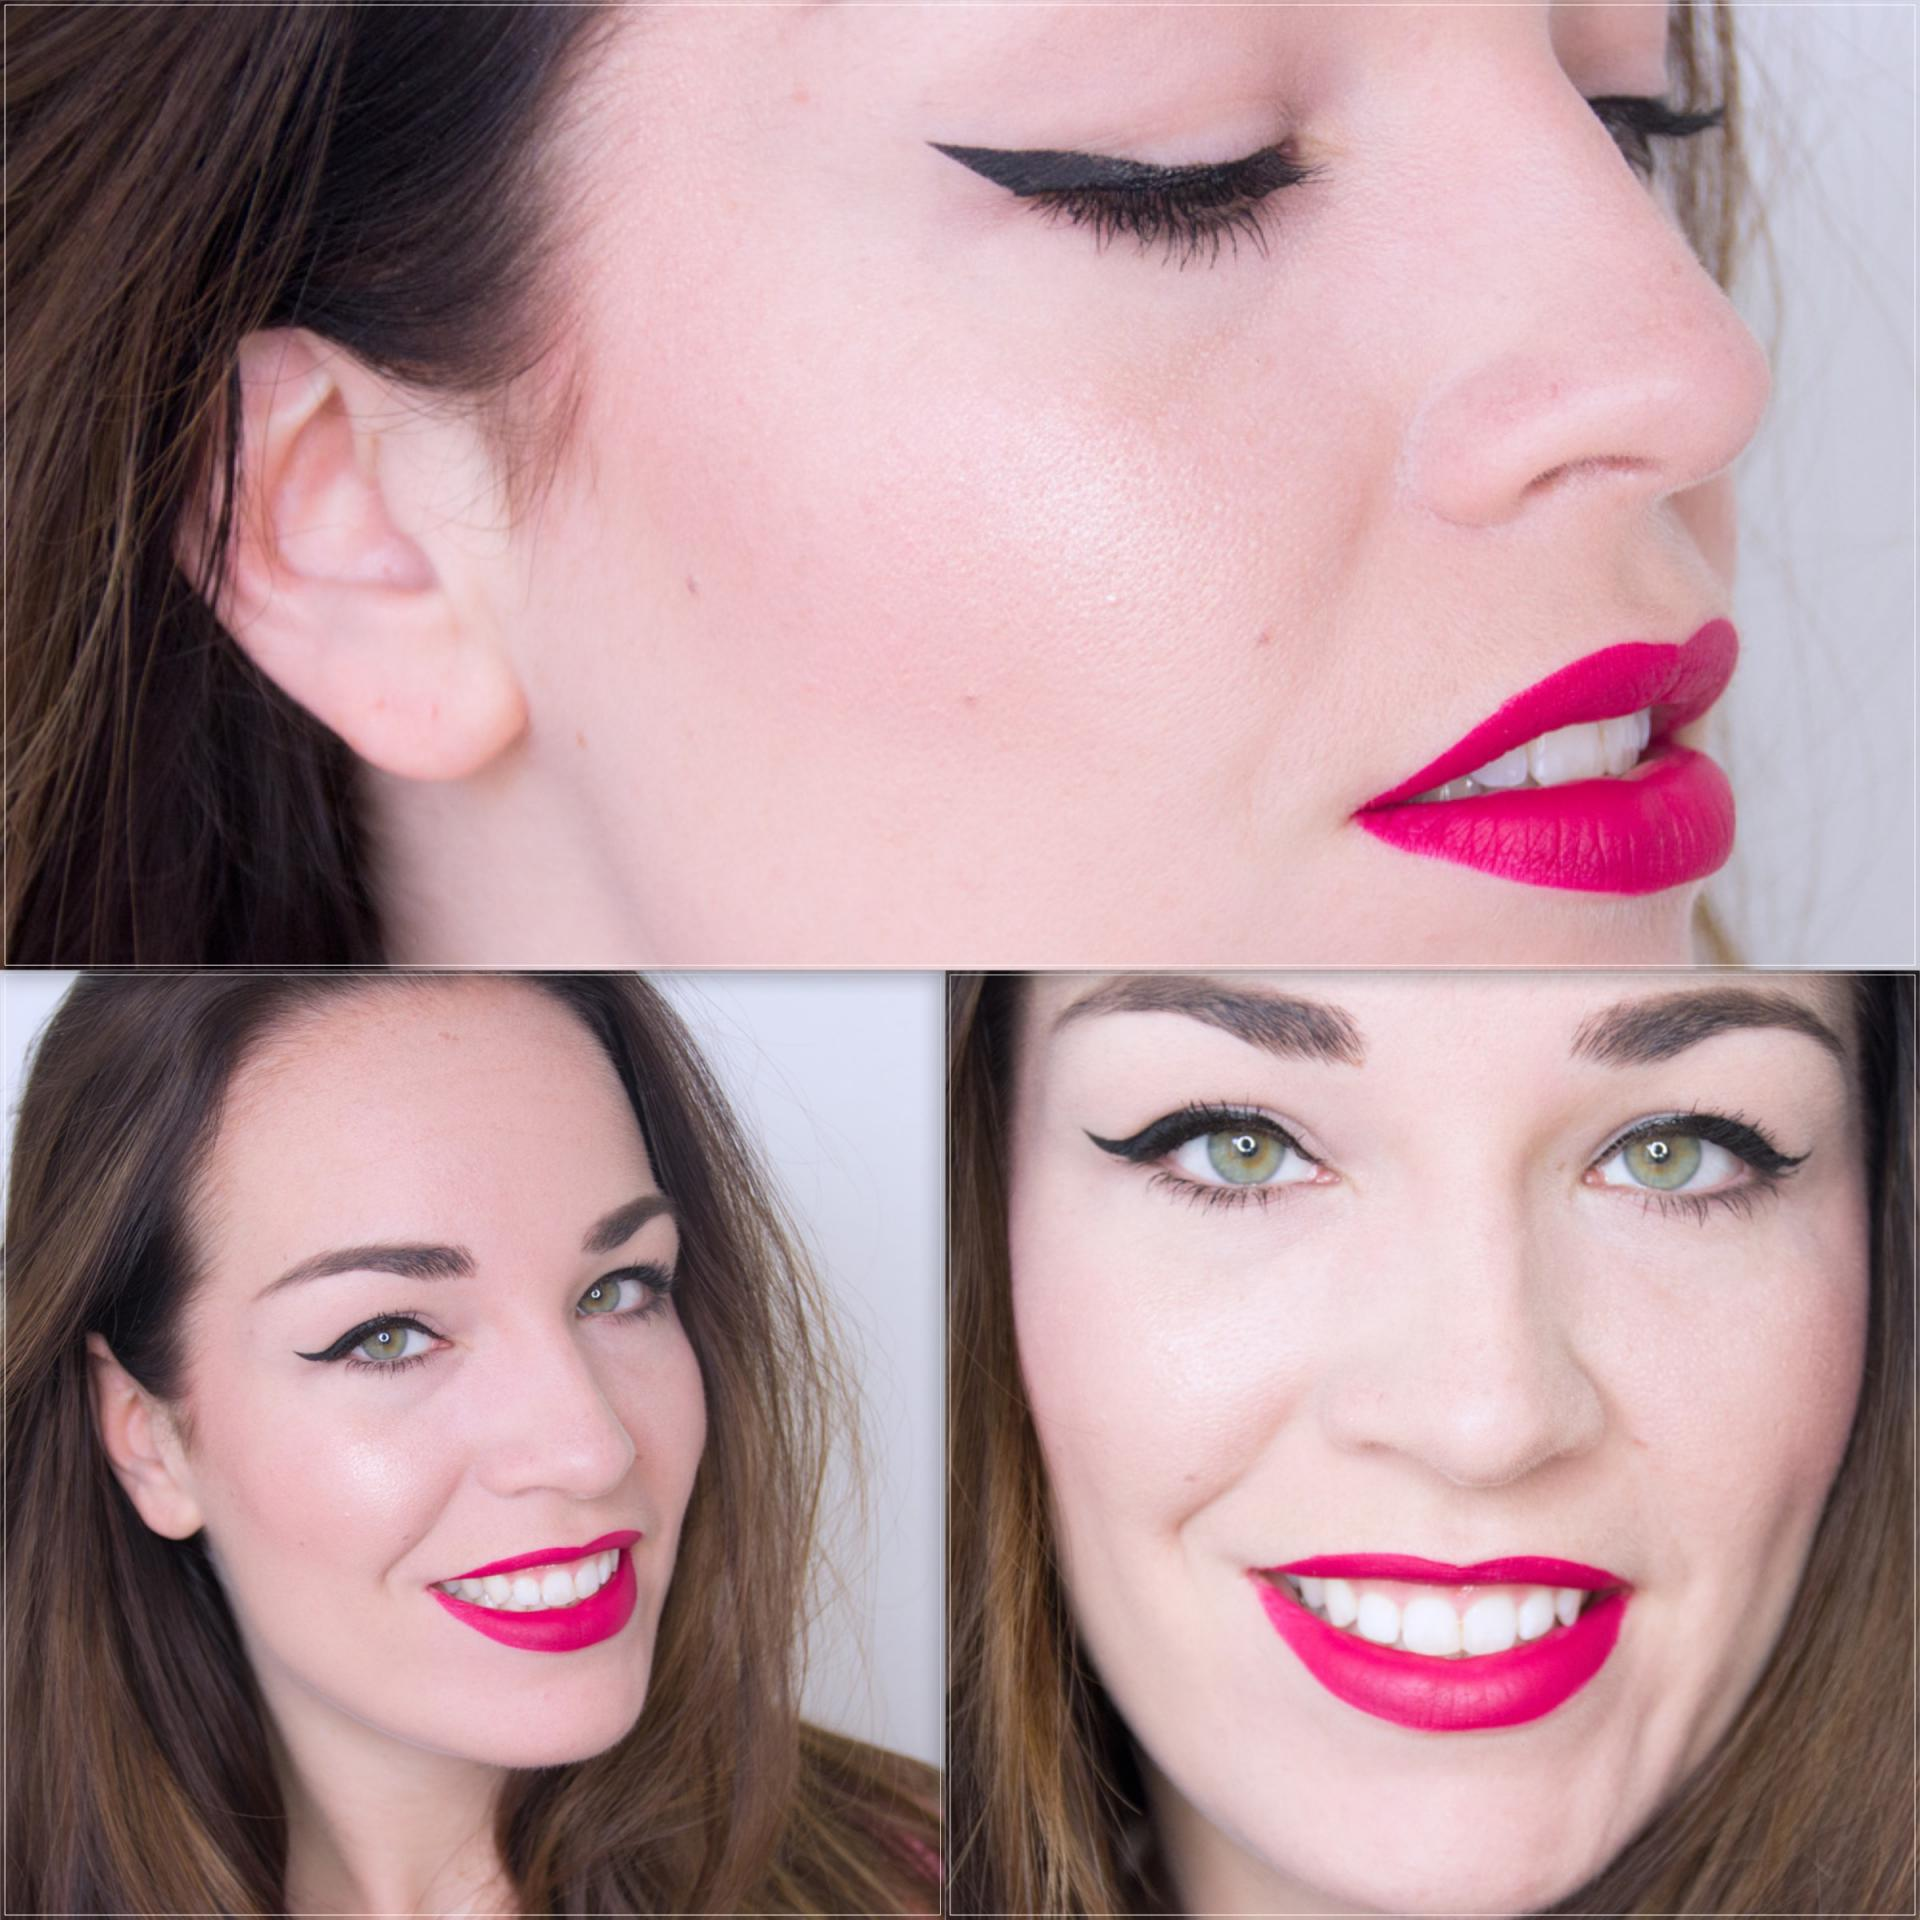 Clean look with winged eyeliner and pink lips